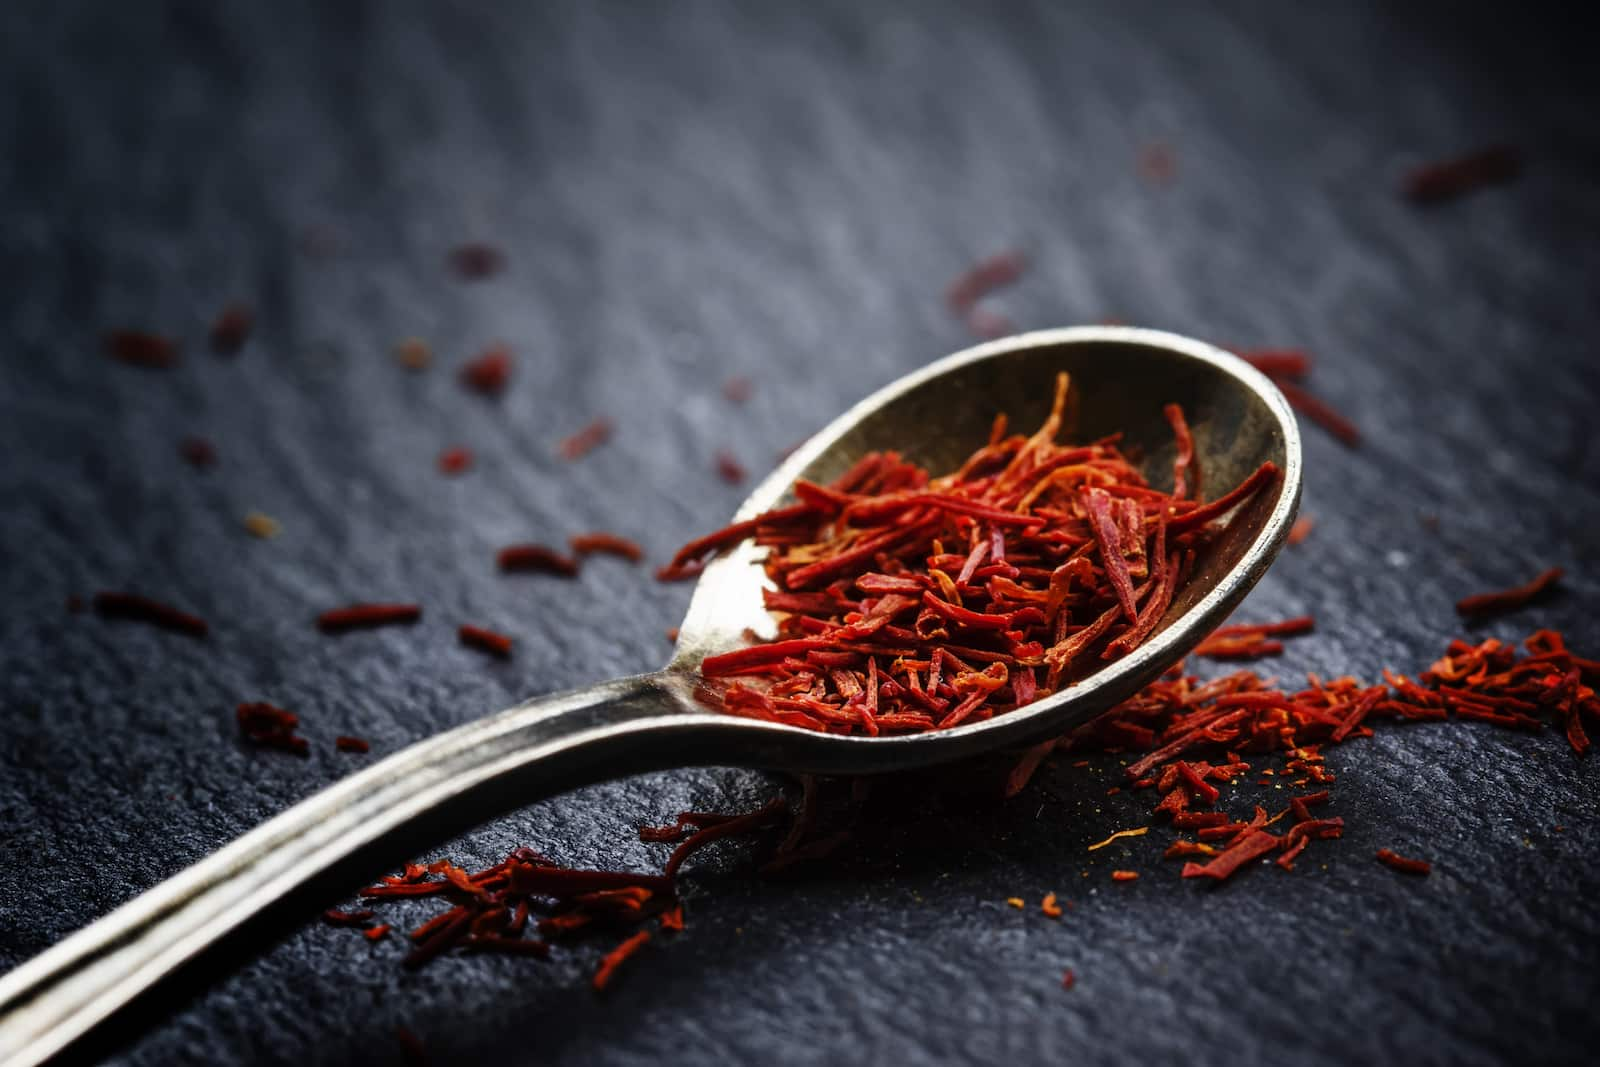 How To Store Saffron For The Best Flavor